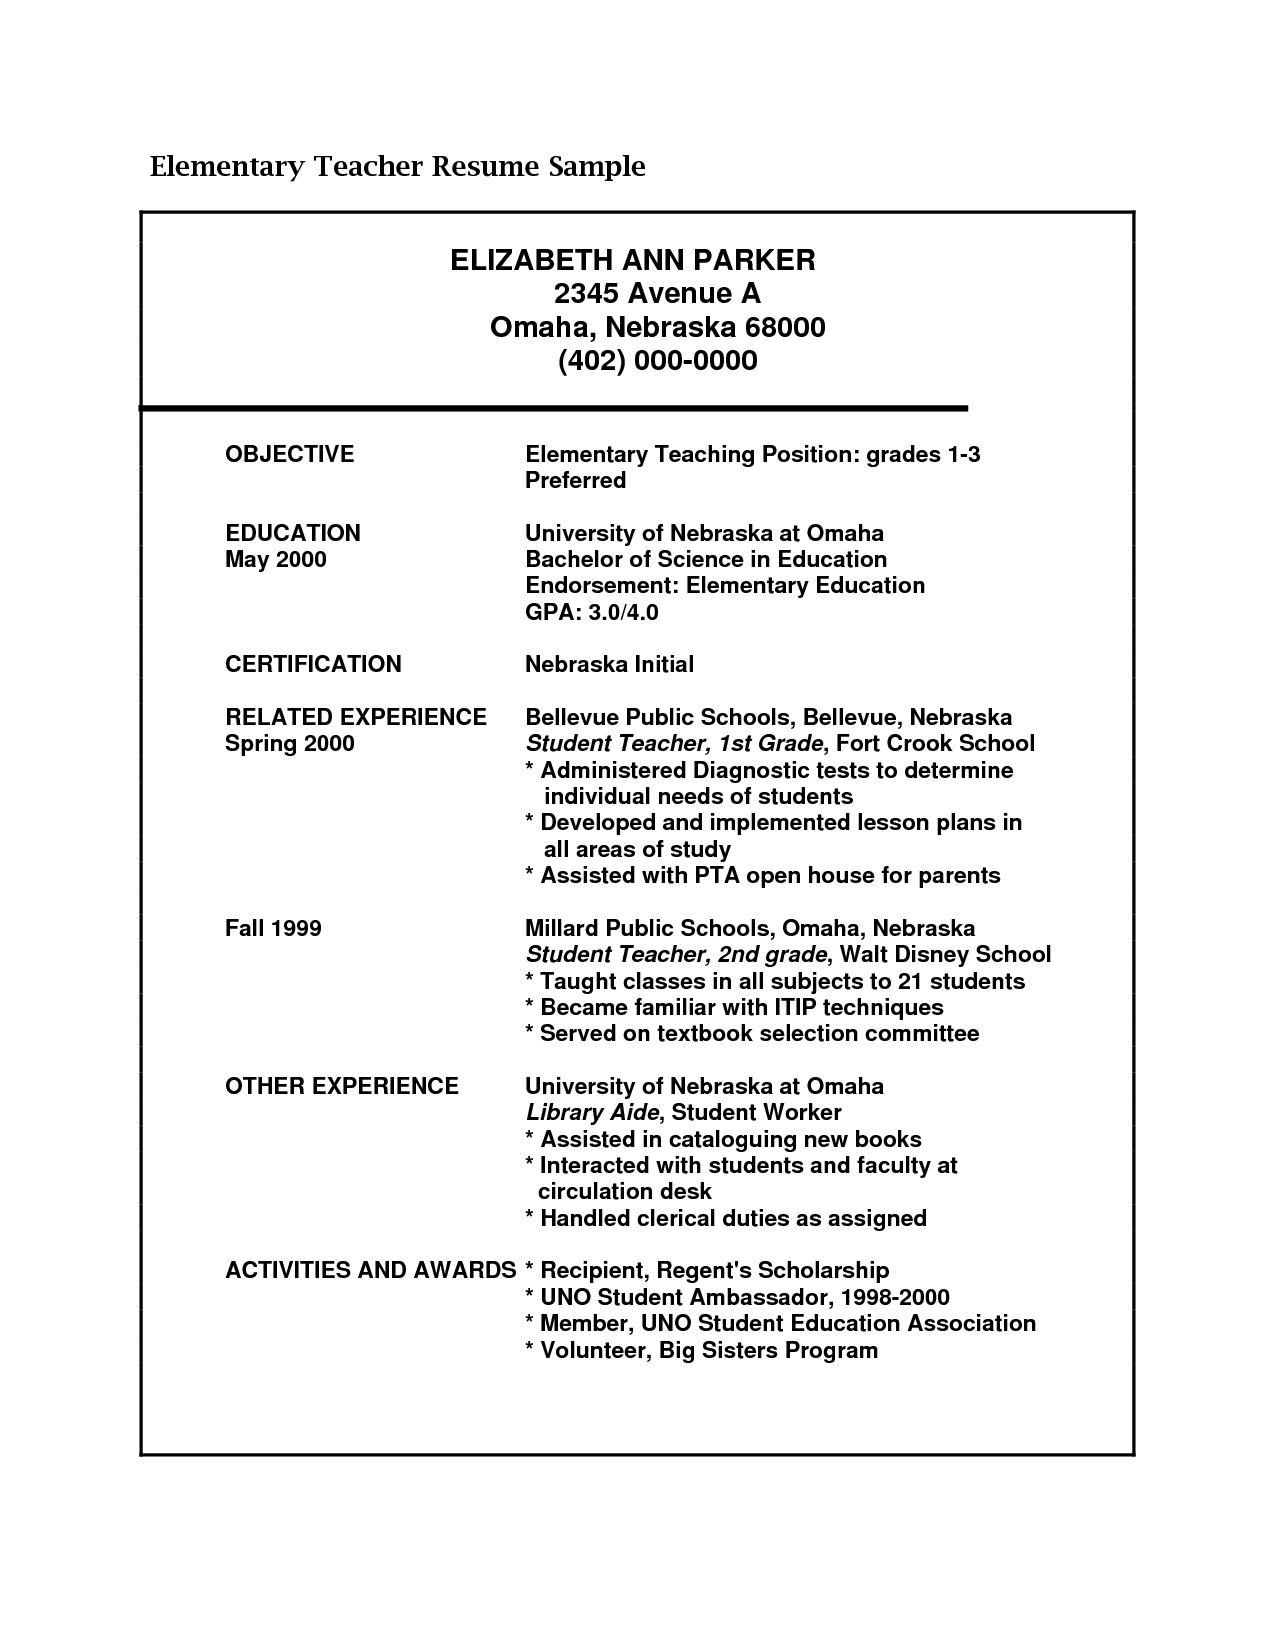 Science Teacher Resume Objective   Http://www.resumecareer.info/science Intended Elementary Teacher Resume Objective